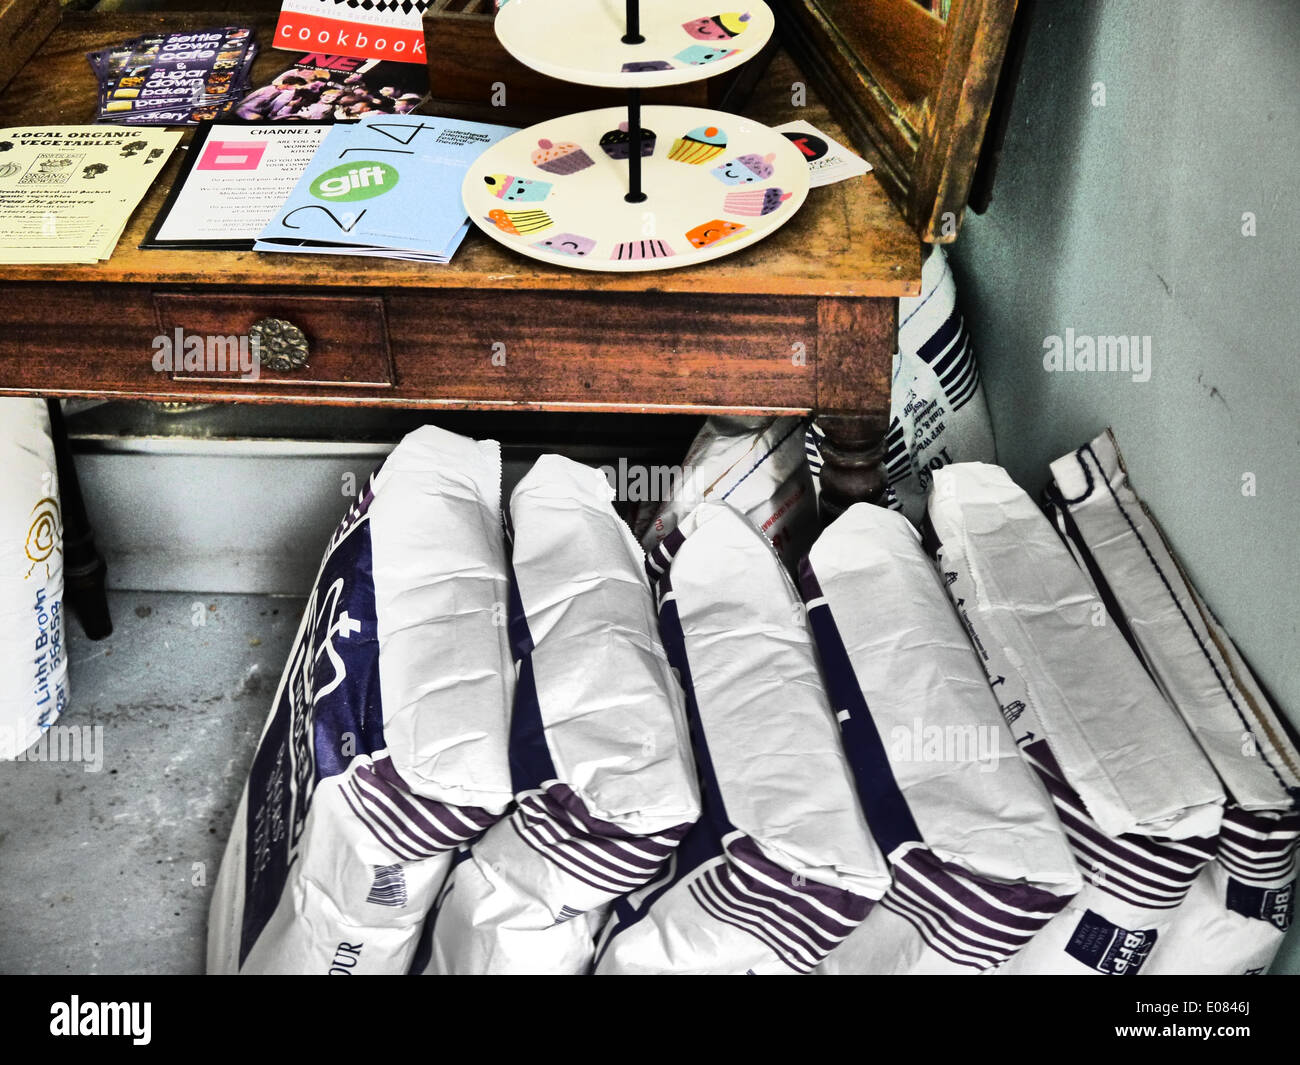 Creative abstract image of table and flour sacks in a craft bakery - colour - Stock Image